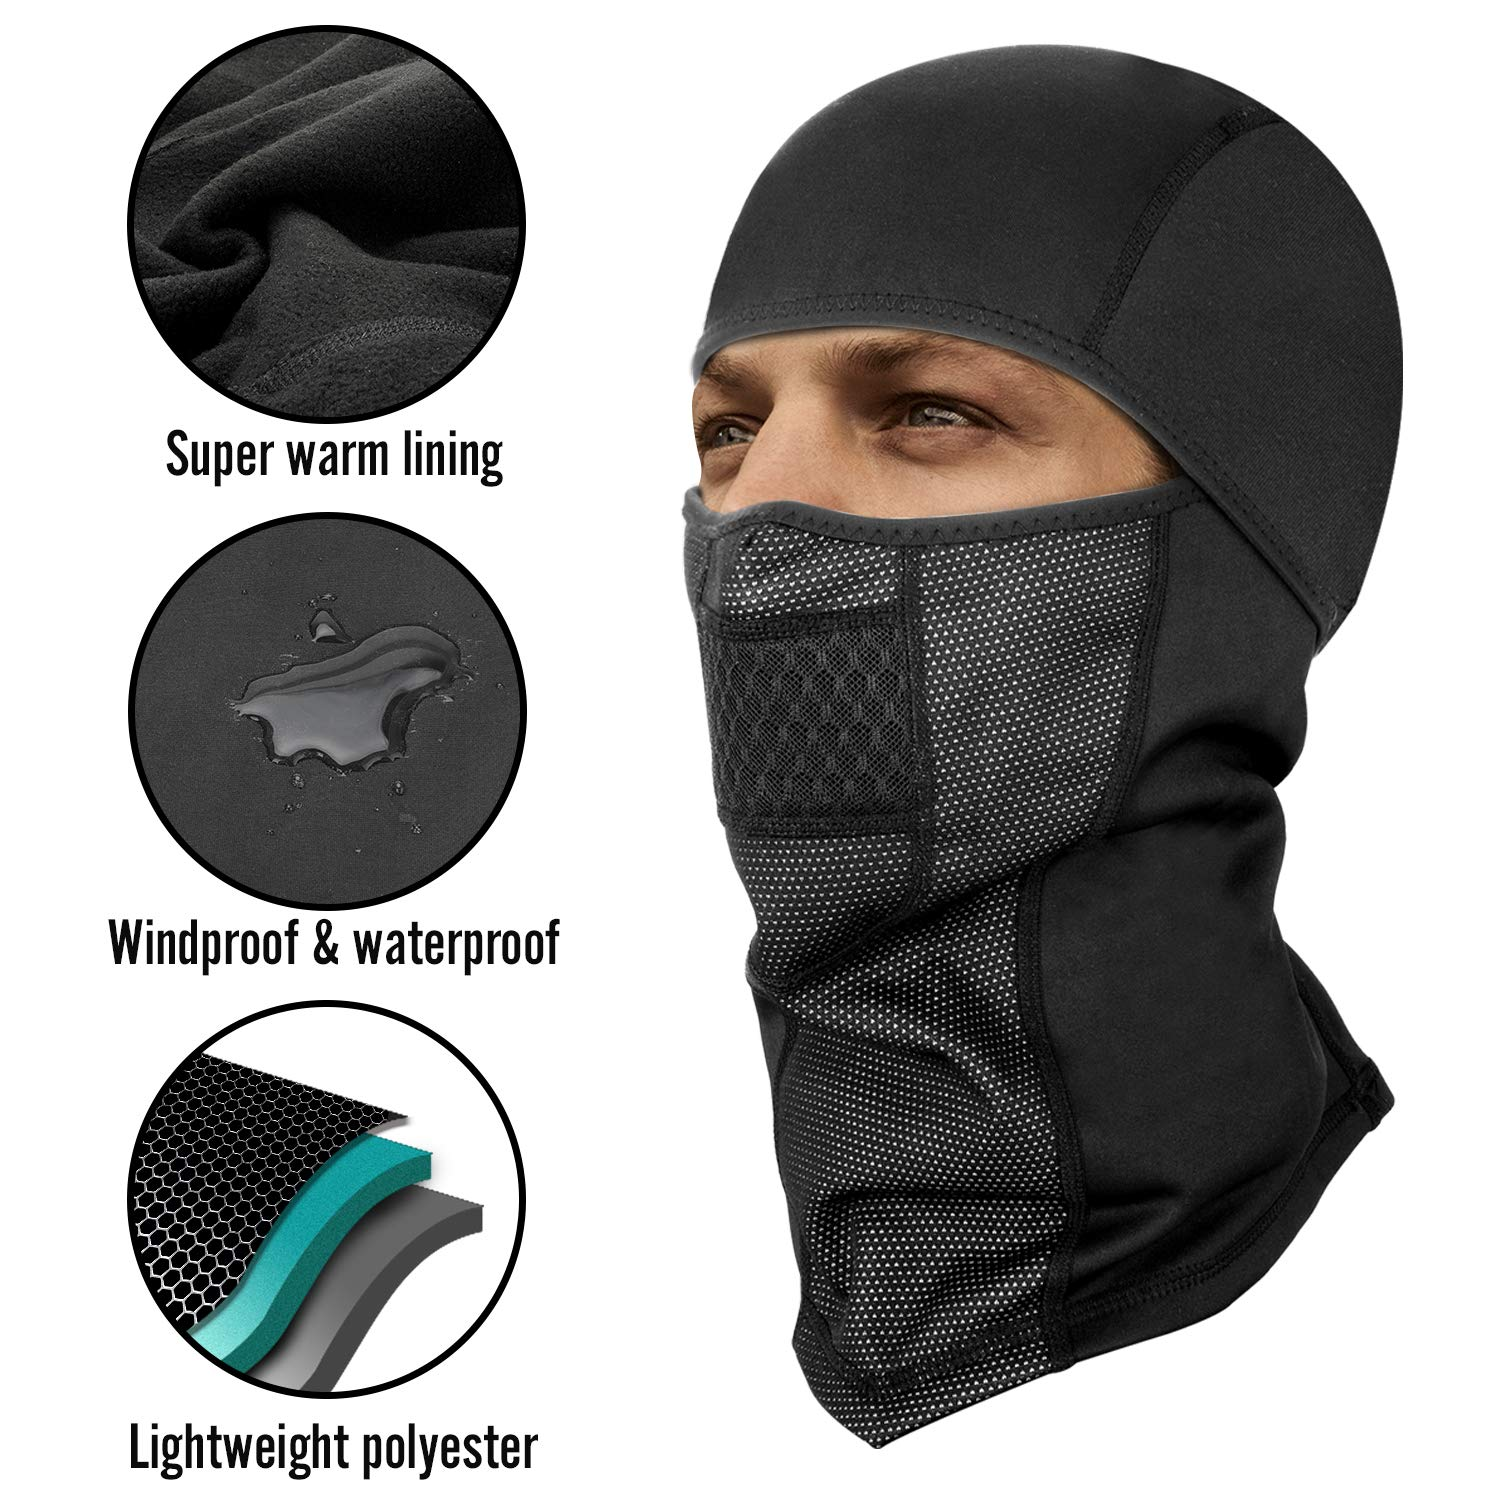 Windproof Ski Hood for Winter Sports Skiing Black Motorcycling SEVENS 2 PCS Balaclava Ski Mask Thermal Face Mask Snowboarding